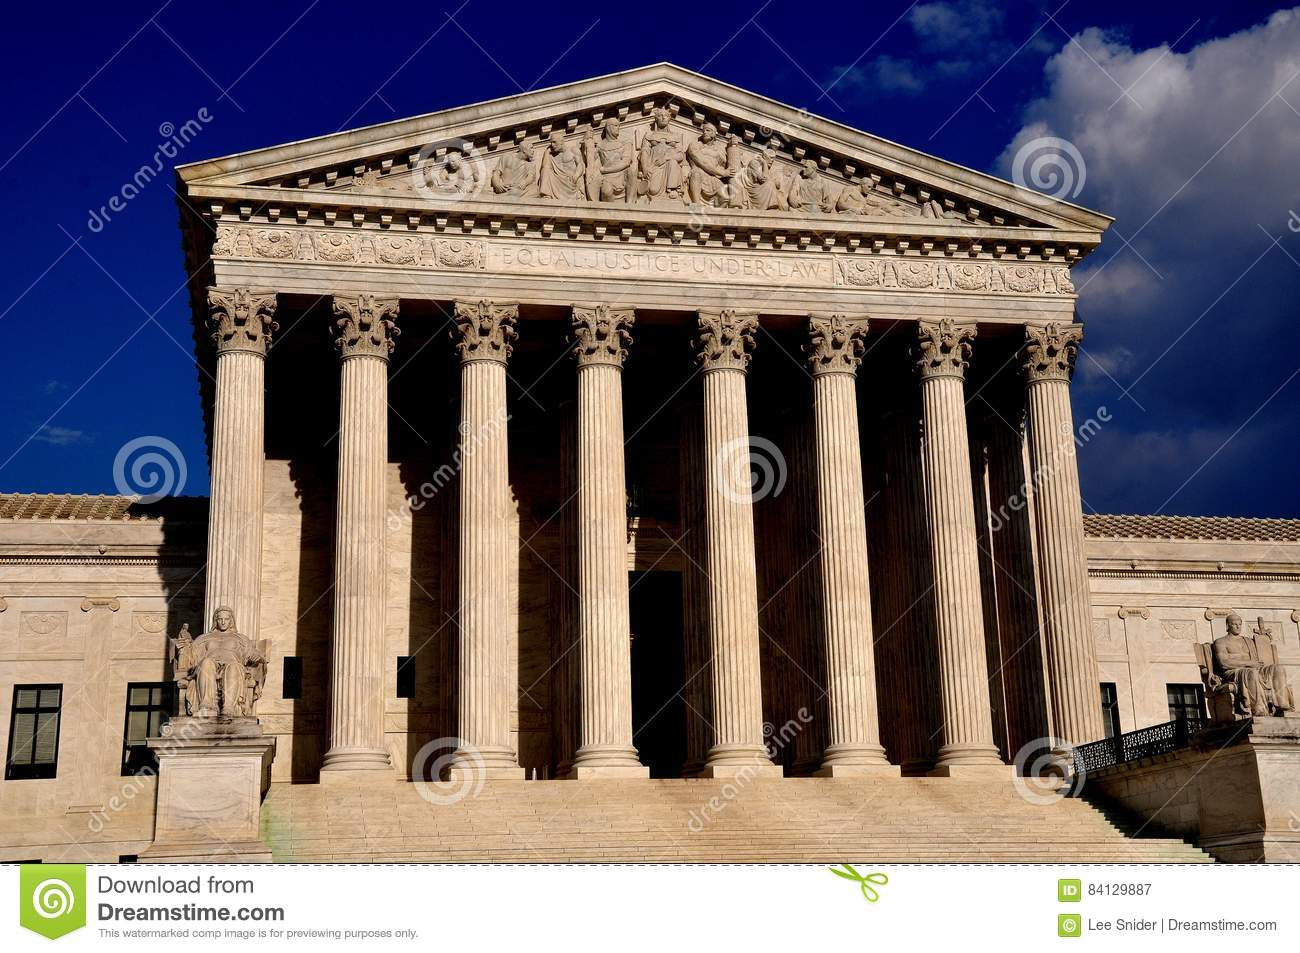 an analysis of united states supreme court Supreme court of the united states  ways, the government's analysis strays from this court's jurisprudence: first, the government misapprehends the.